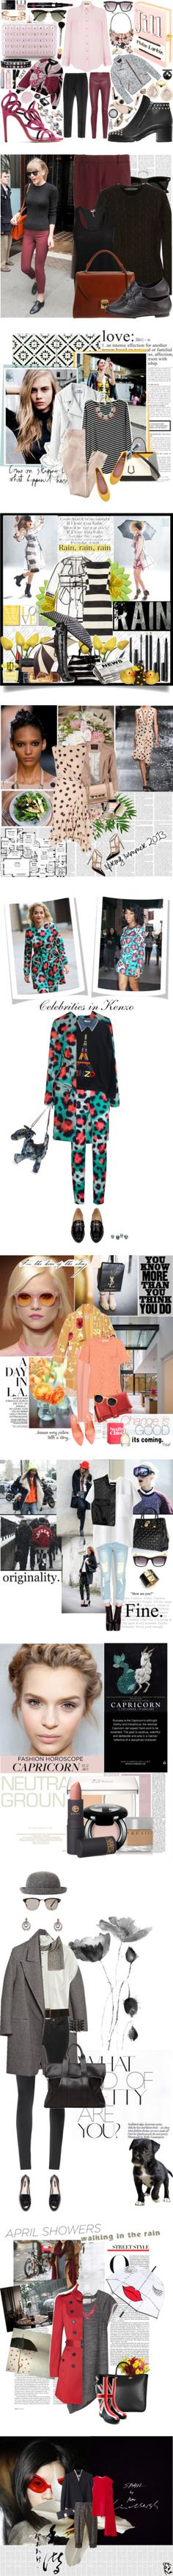 """Top Sets for Apr 5th, 2013"" by polyvore ❤ liked on Polyvore"